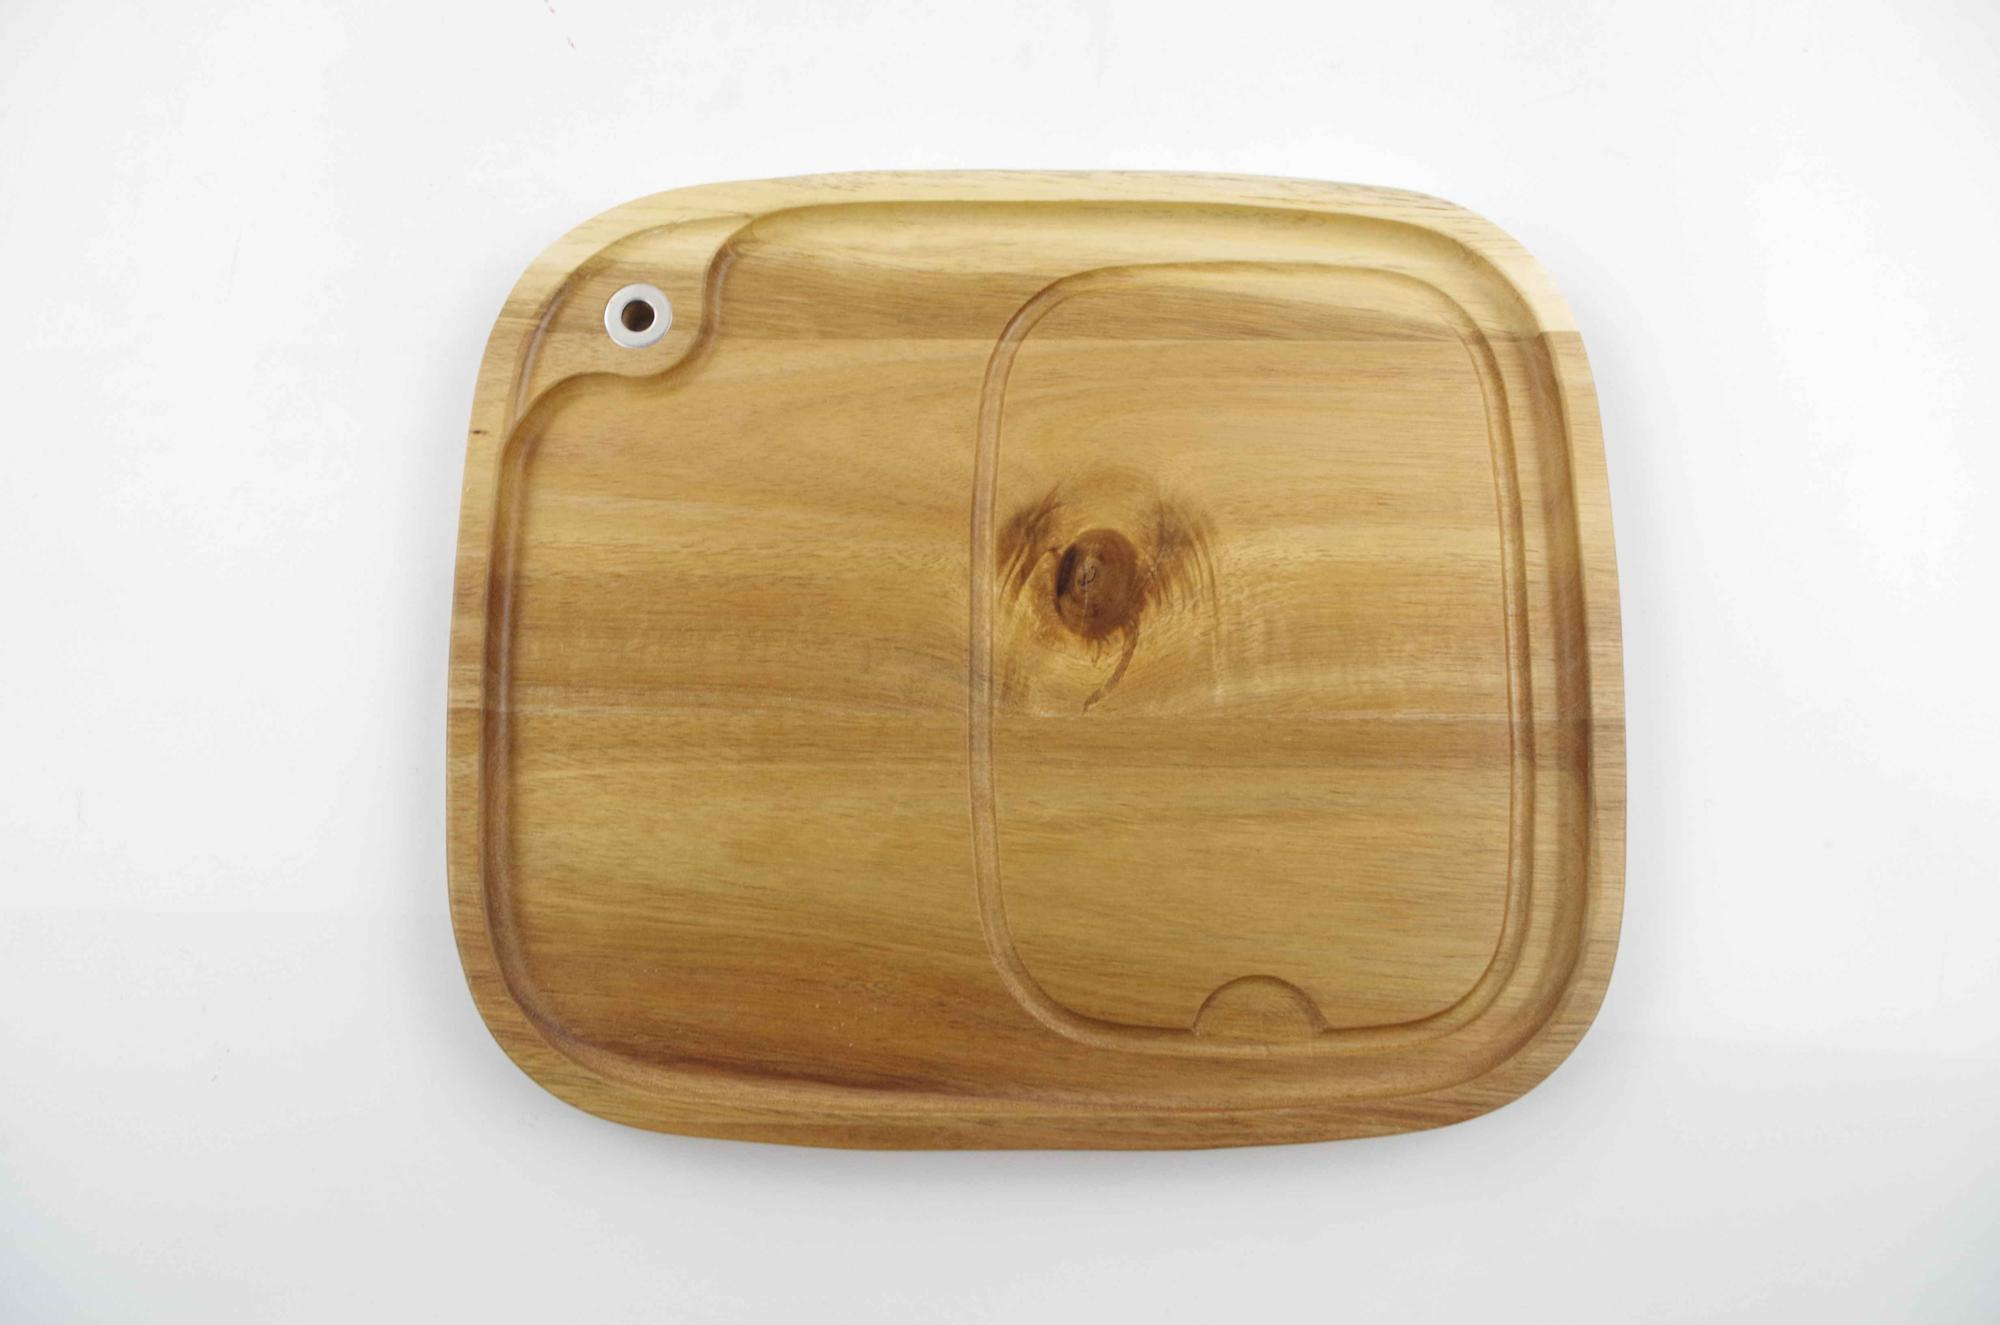 Acacia wood Kitchenware/restaurant Steak Serving Plate